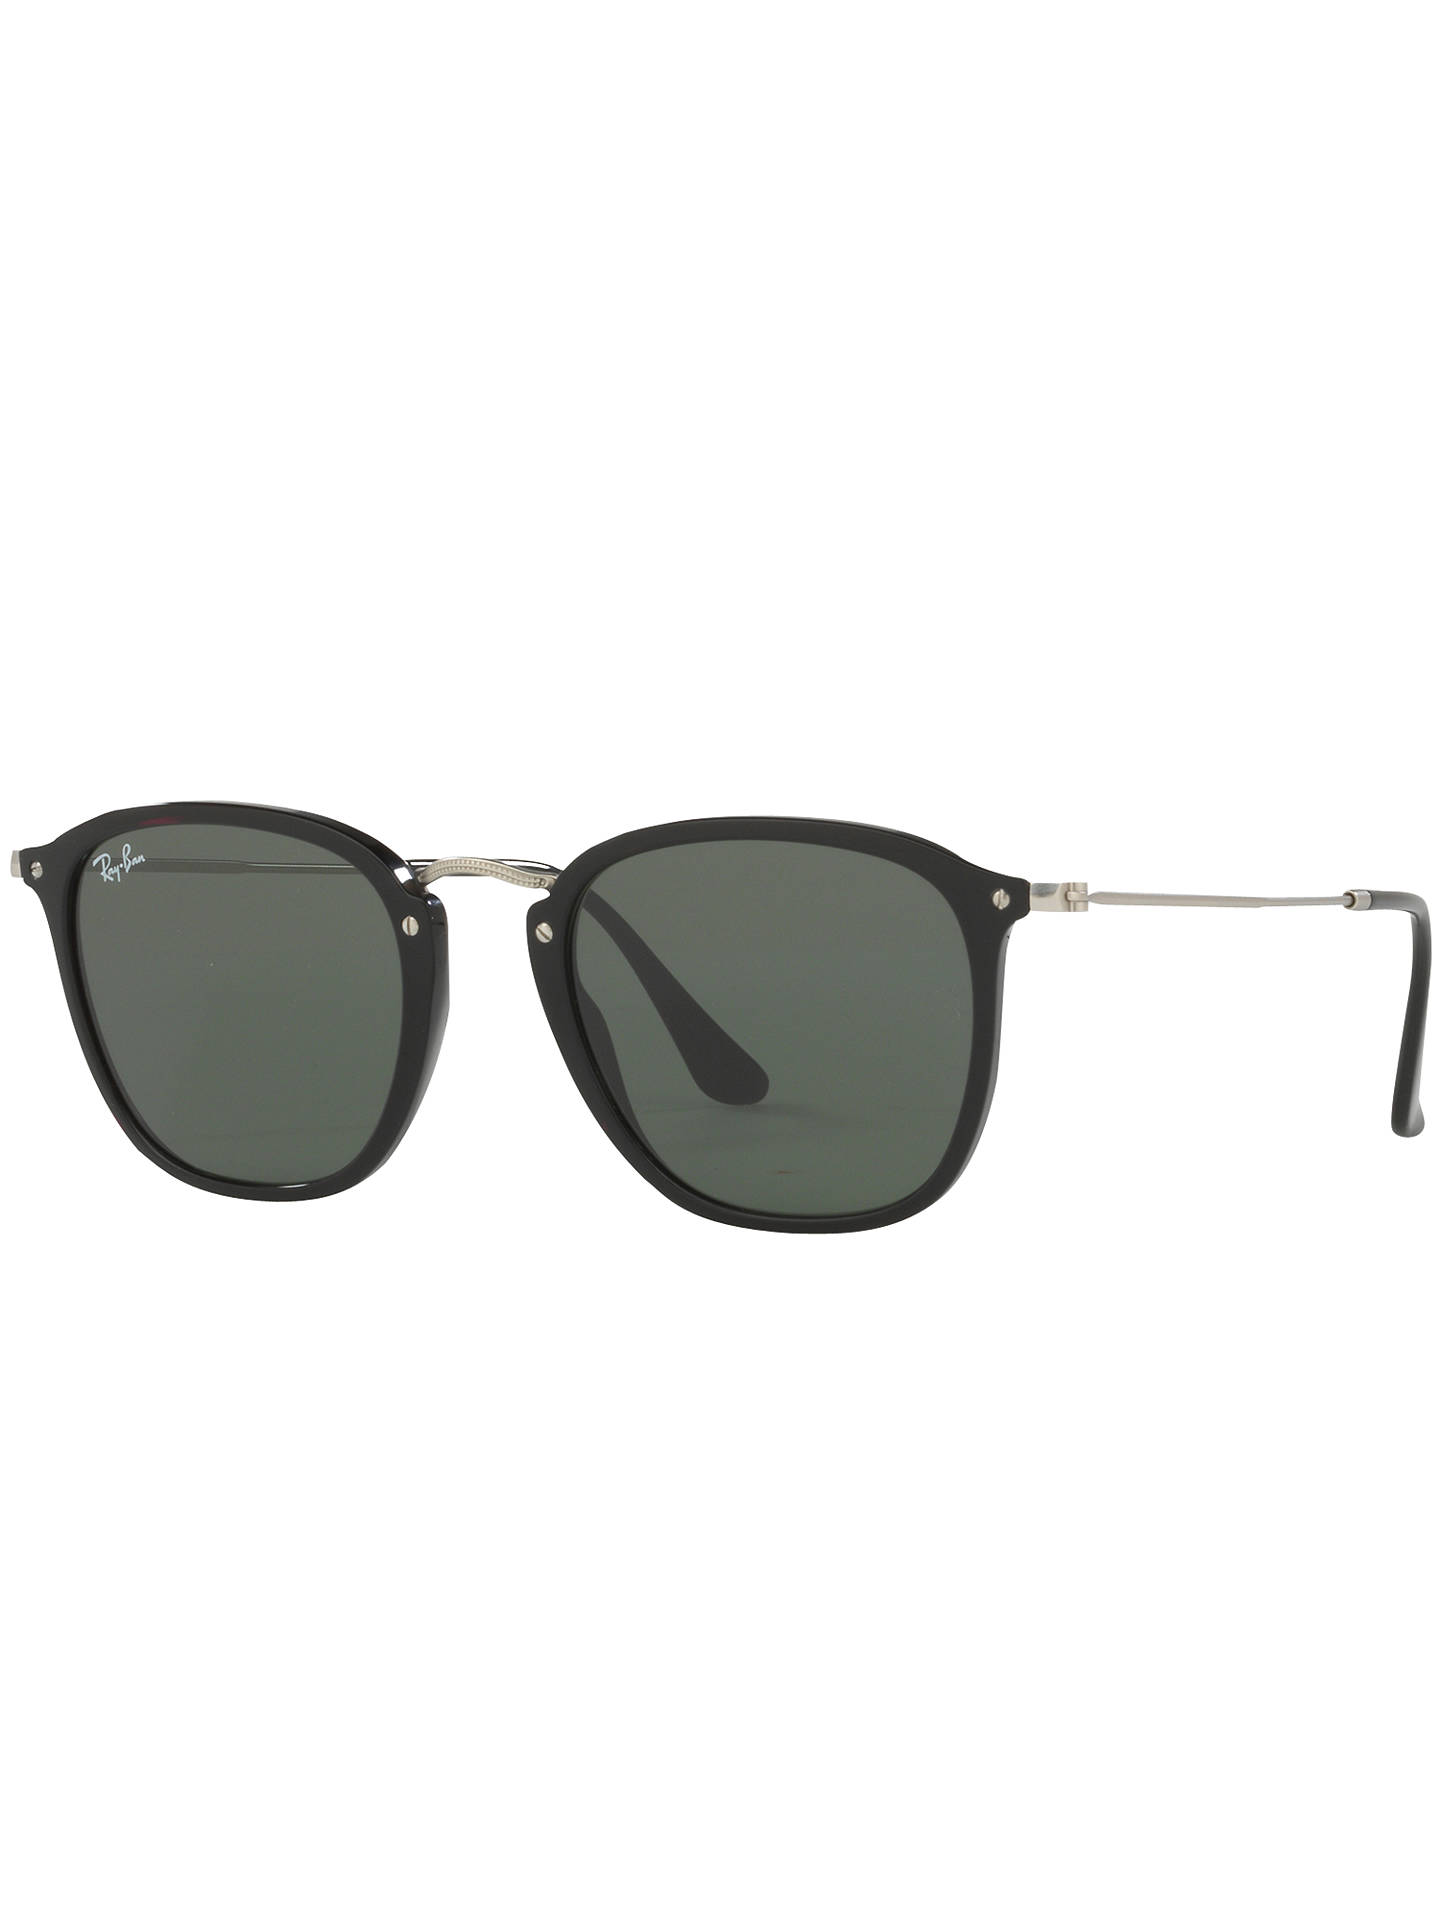 Buy Ray-Ban RB2448N Square Sunglasses, Black/Dark Green Online at johnlewis.com